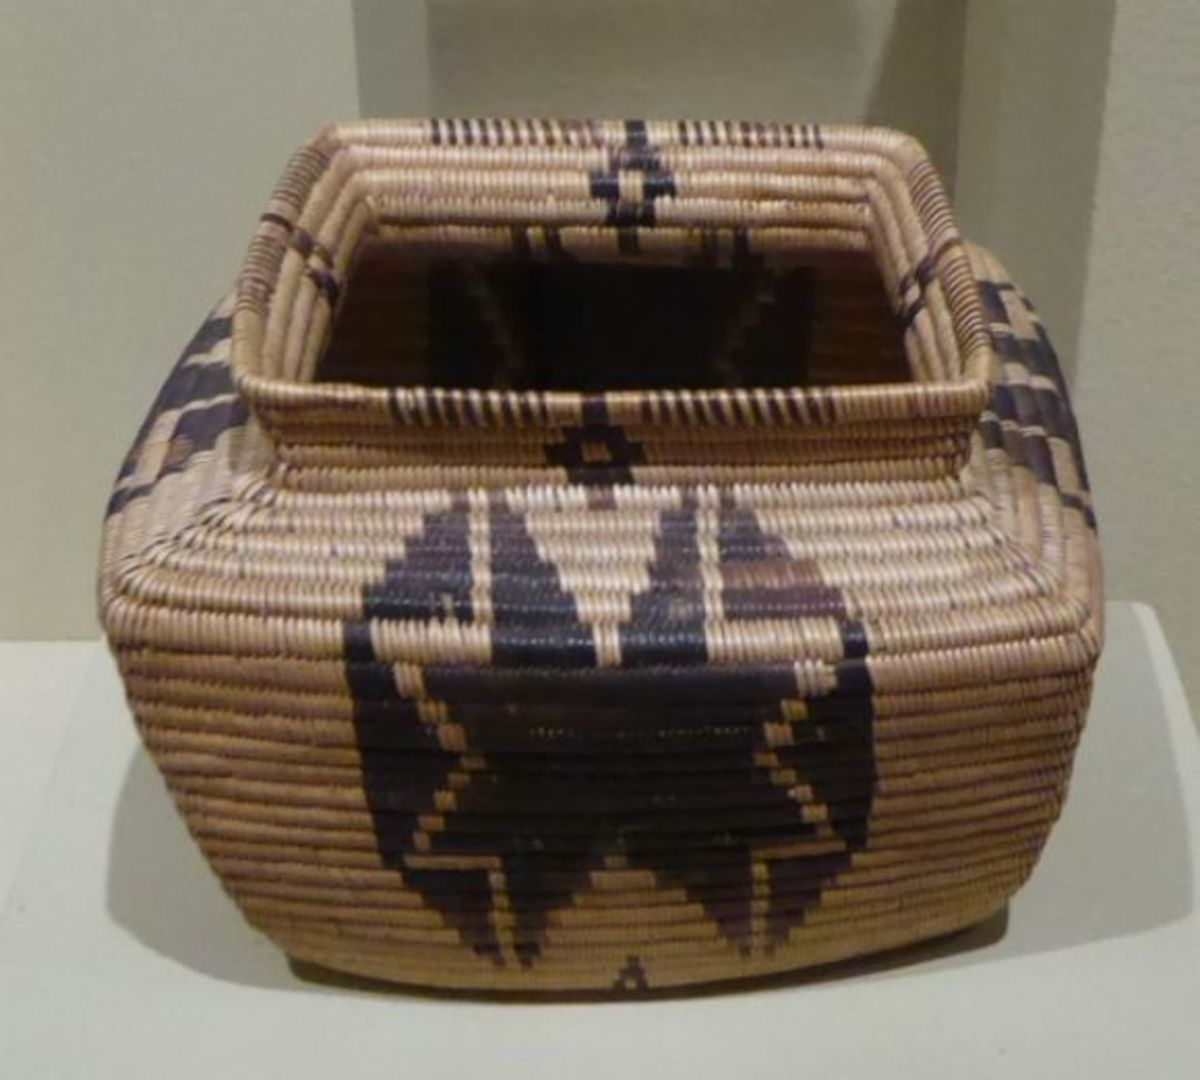 Basket of the Timbisha